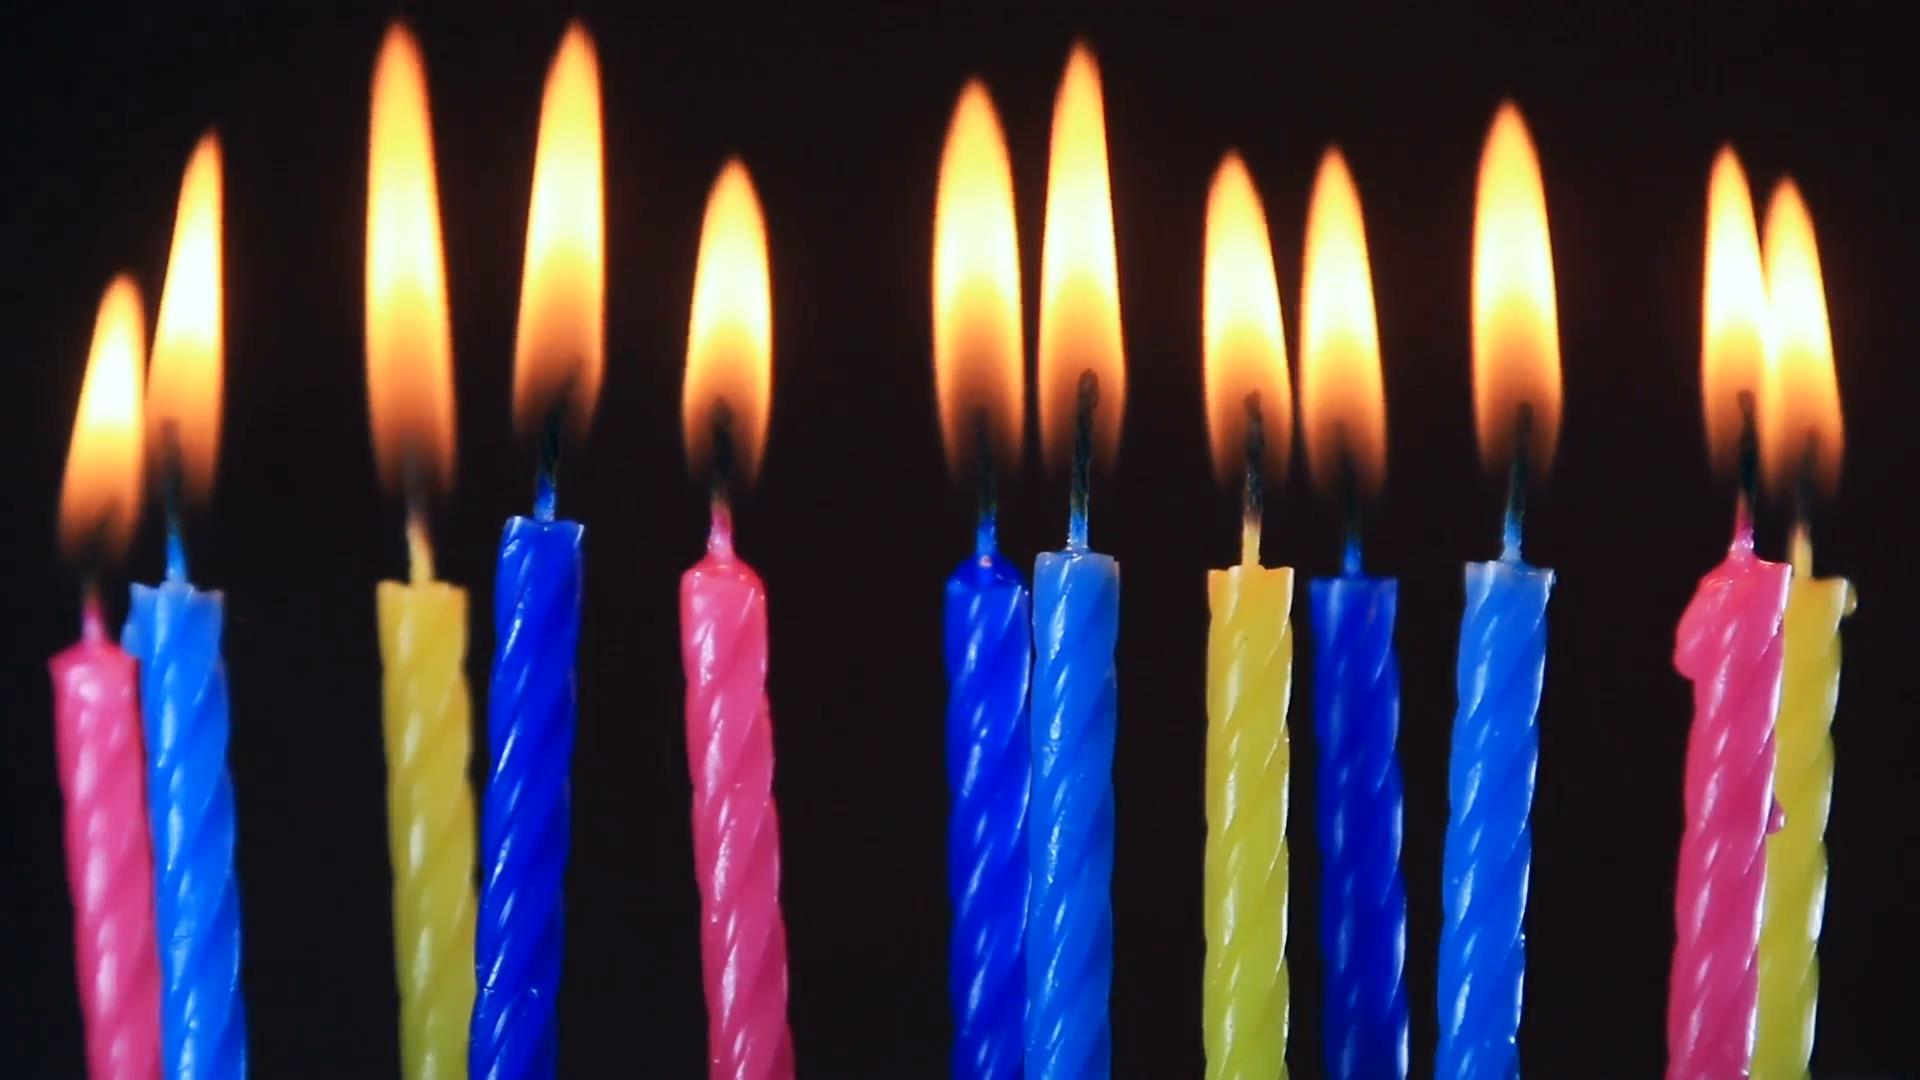 picture of birthday candles burning ; birthday-candles-burning-time-lipse_b819lg5g__F0000